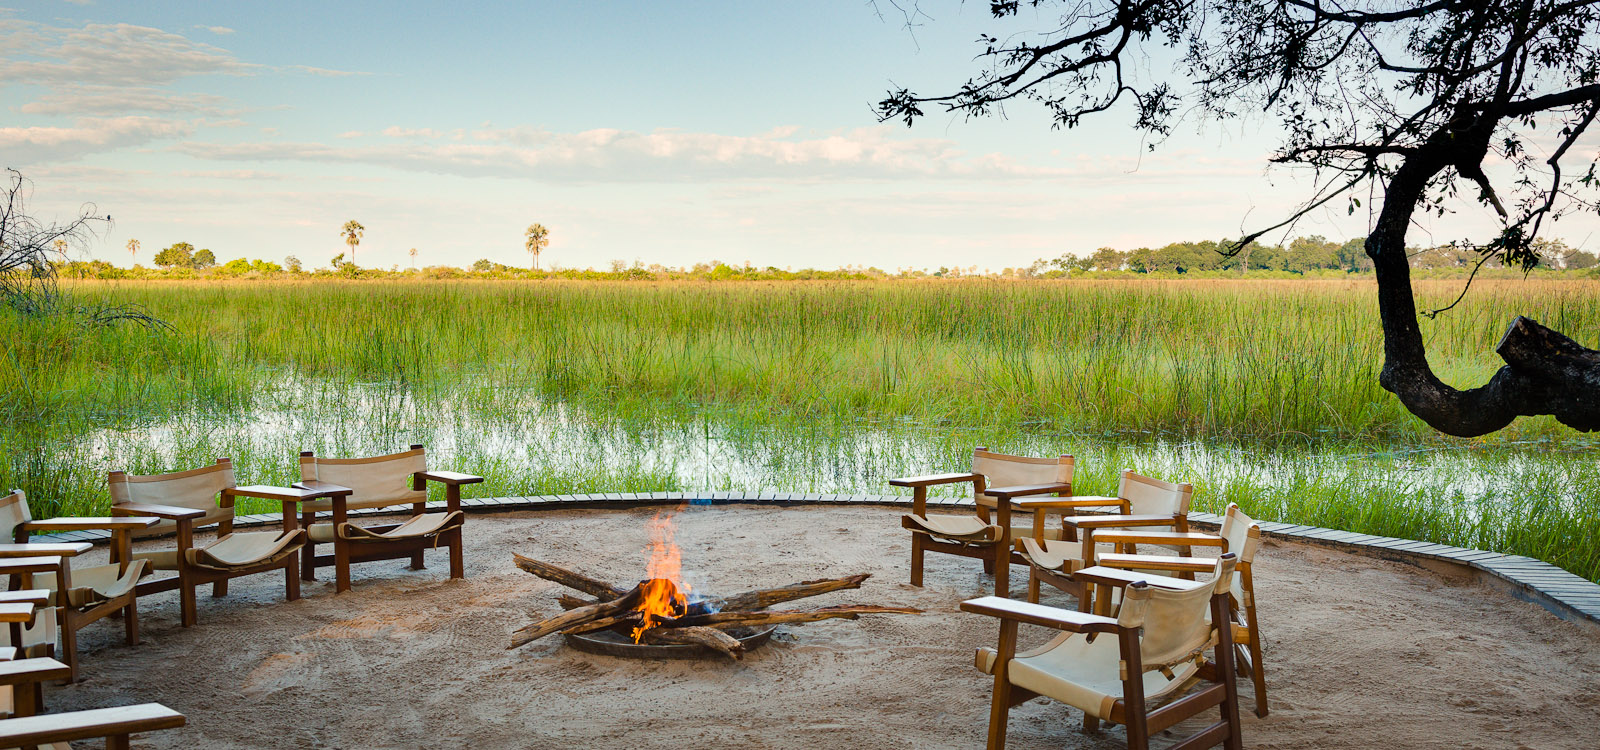 Fire pit at Abu Camp. Early morning breakfasts, high tea, sundowners, and dinner can be enjoyed in this open air setting. Abu Camp is a Wilderness Safari's Collection Camp in the Okavango Delta, Botswana. Photo © 2012 Jay Graham, all rights reserved